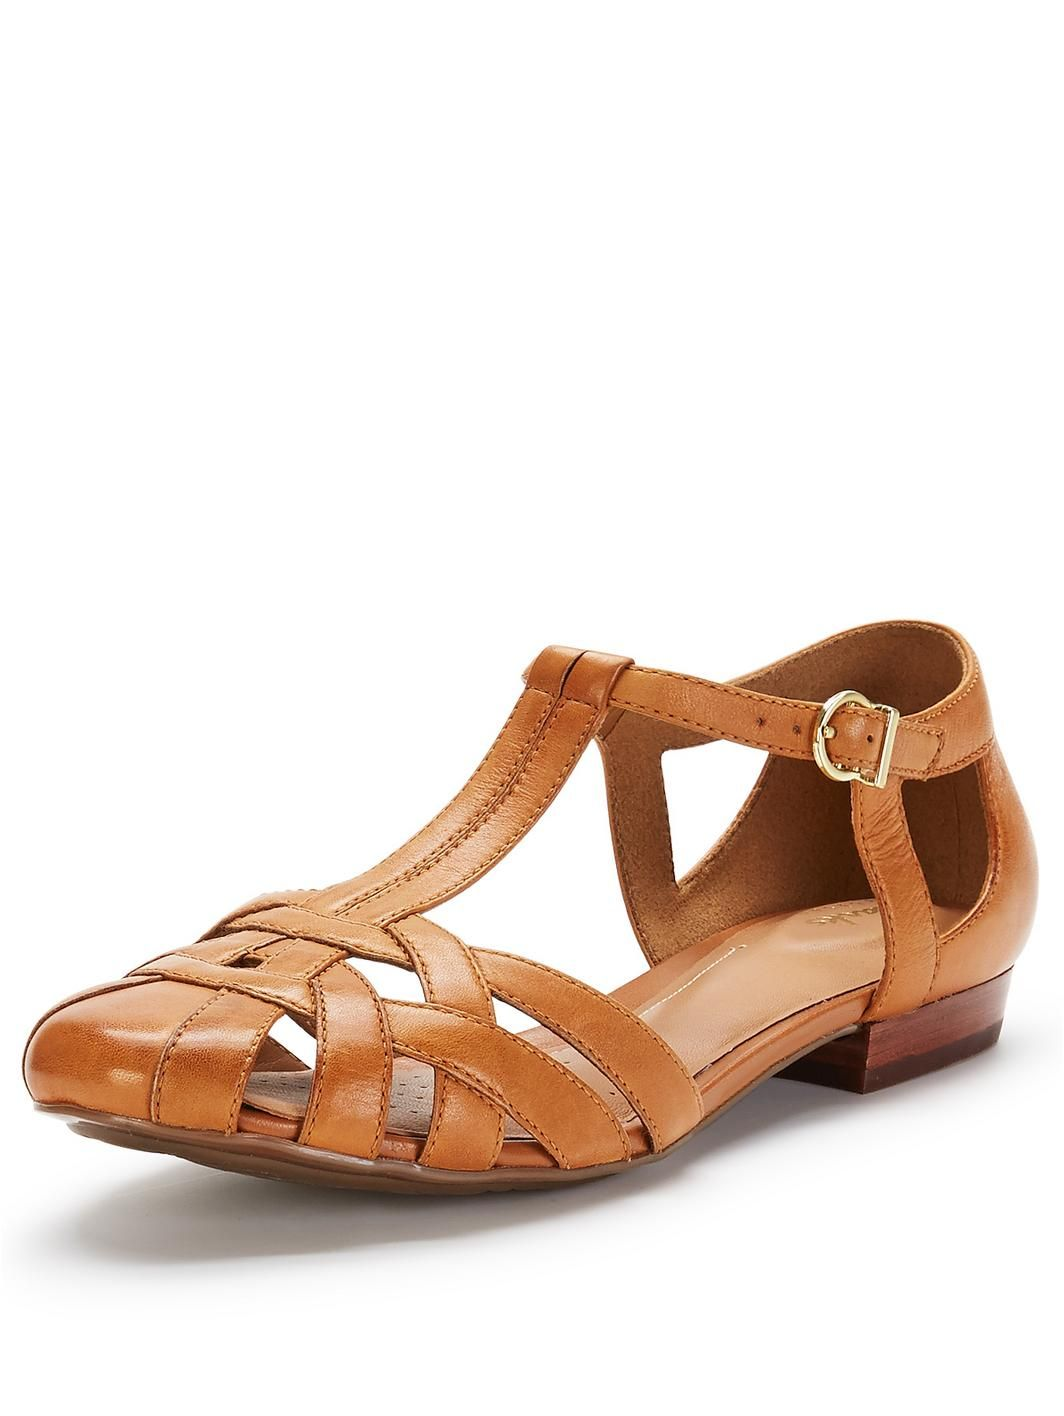 7c1d0f106c7d6 Clarks closed toe and heel sandals - great for orthotic wearers. €64.00 Tan  Sandals